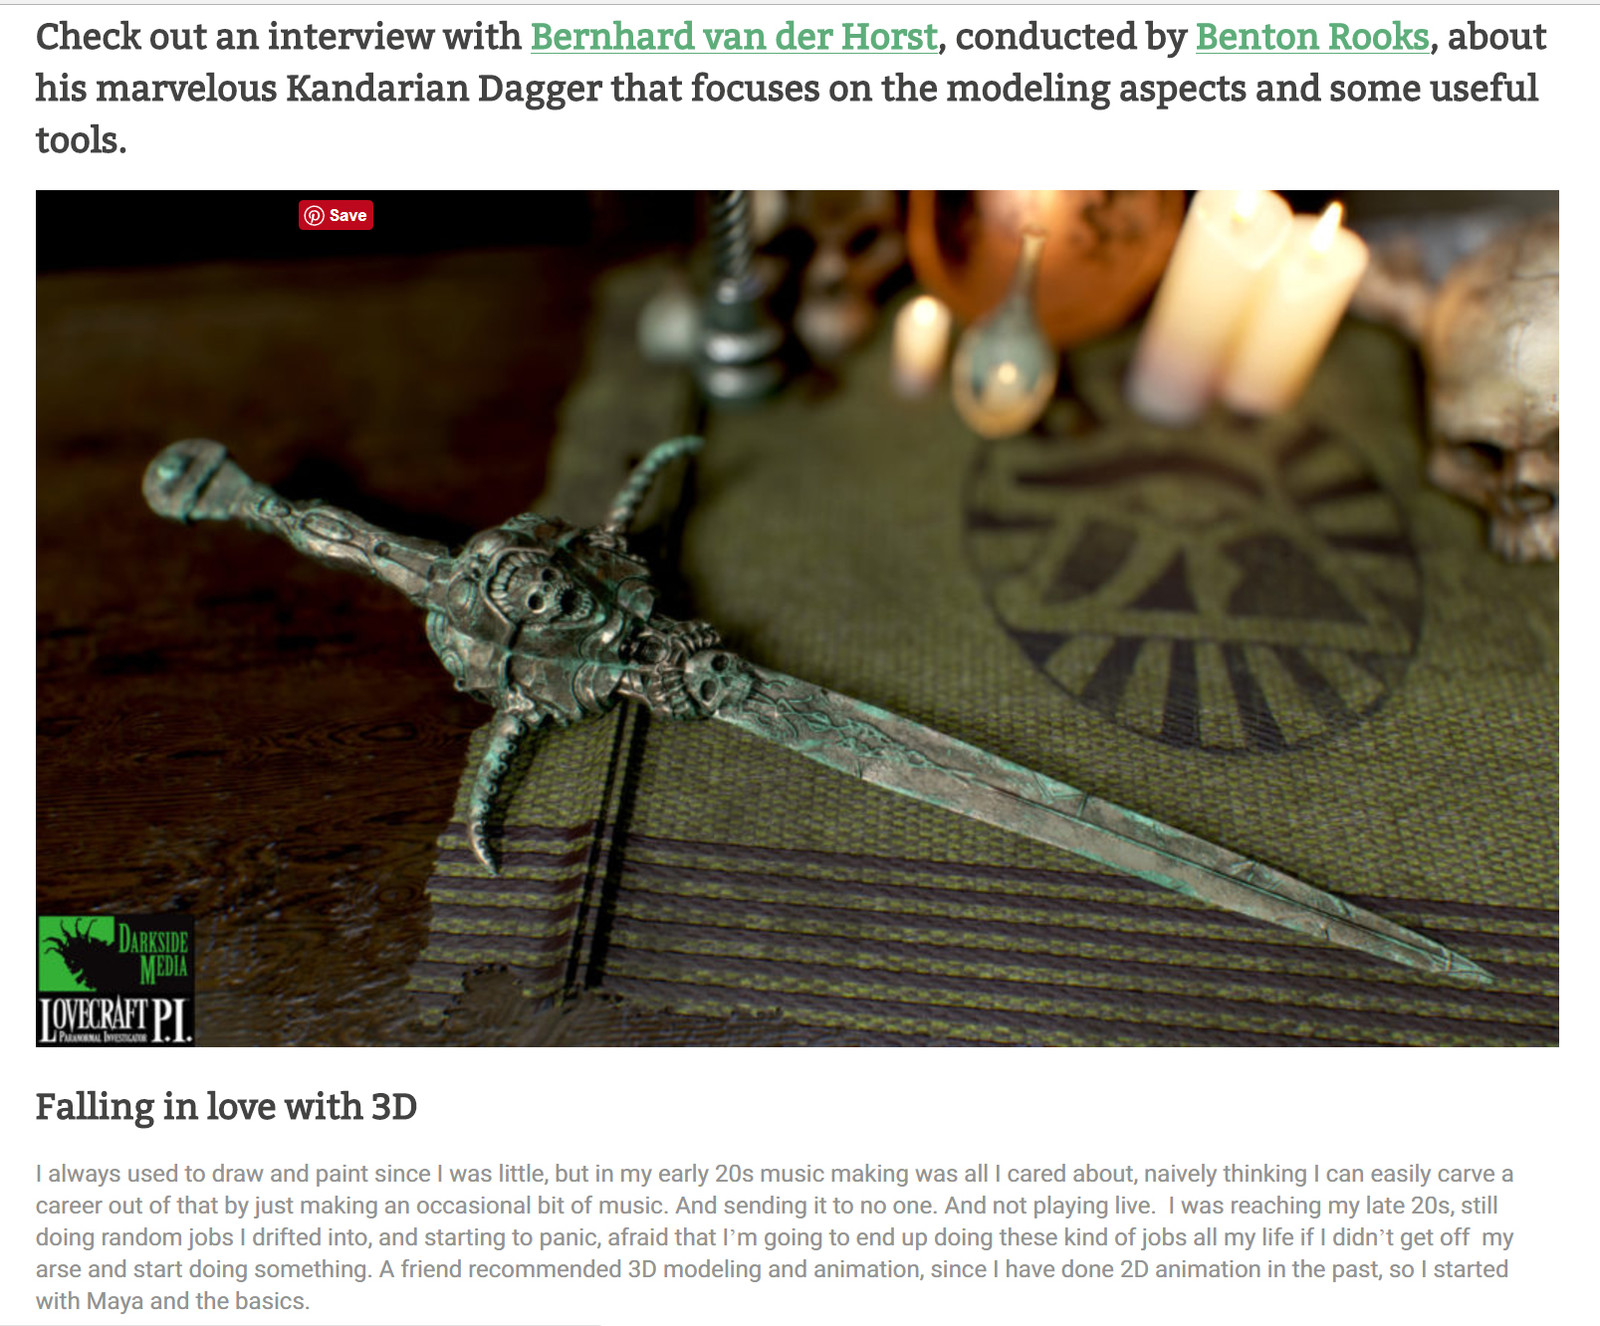 An interview with 80 level detailing the making of the dagger https://80.lv/articles/modeling-an-ancient-dagger-in-3d/